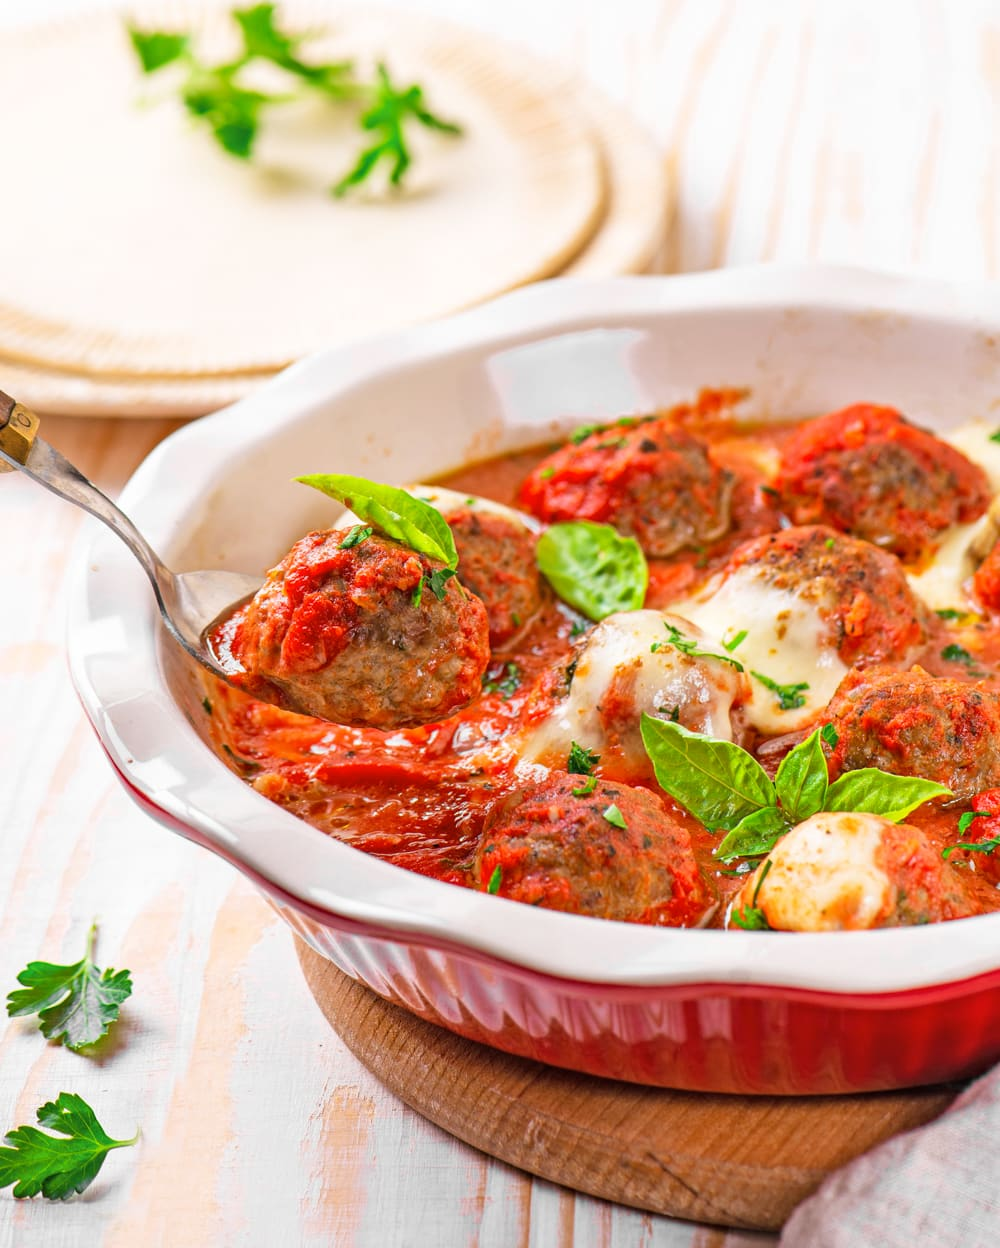 A spoon lifting a low carb meatball out of a pot.